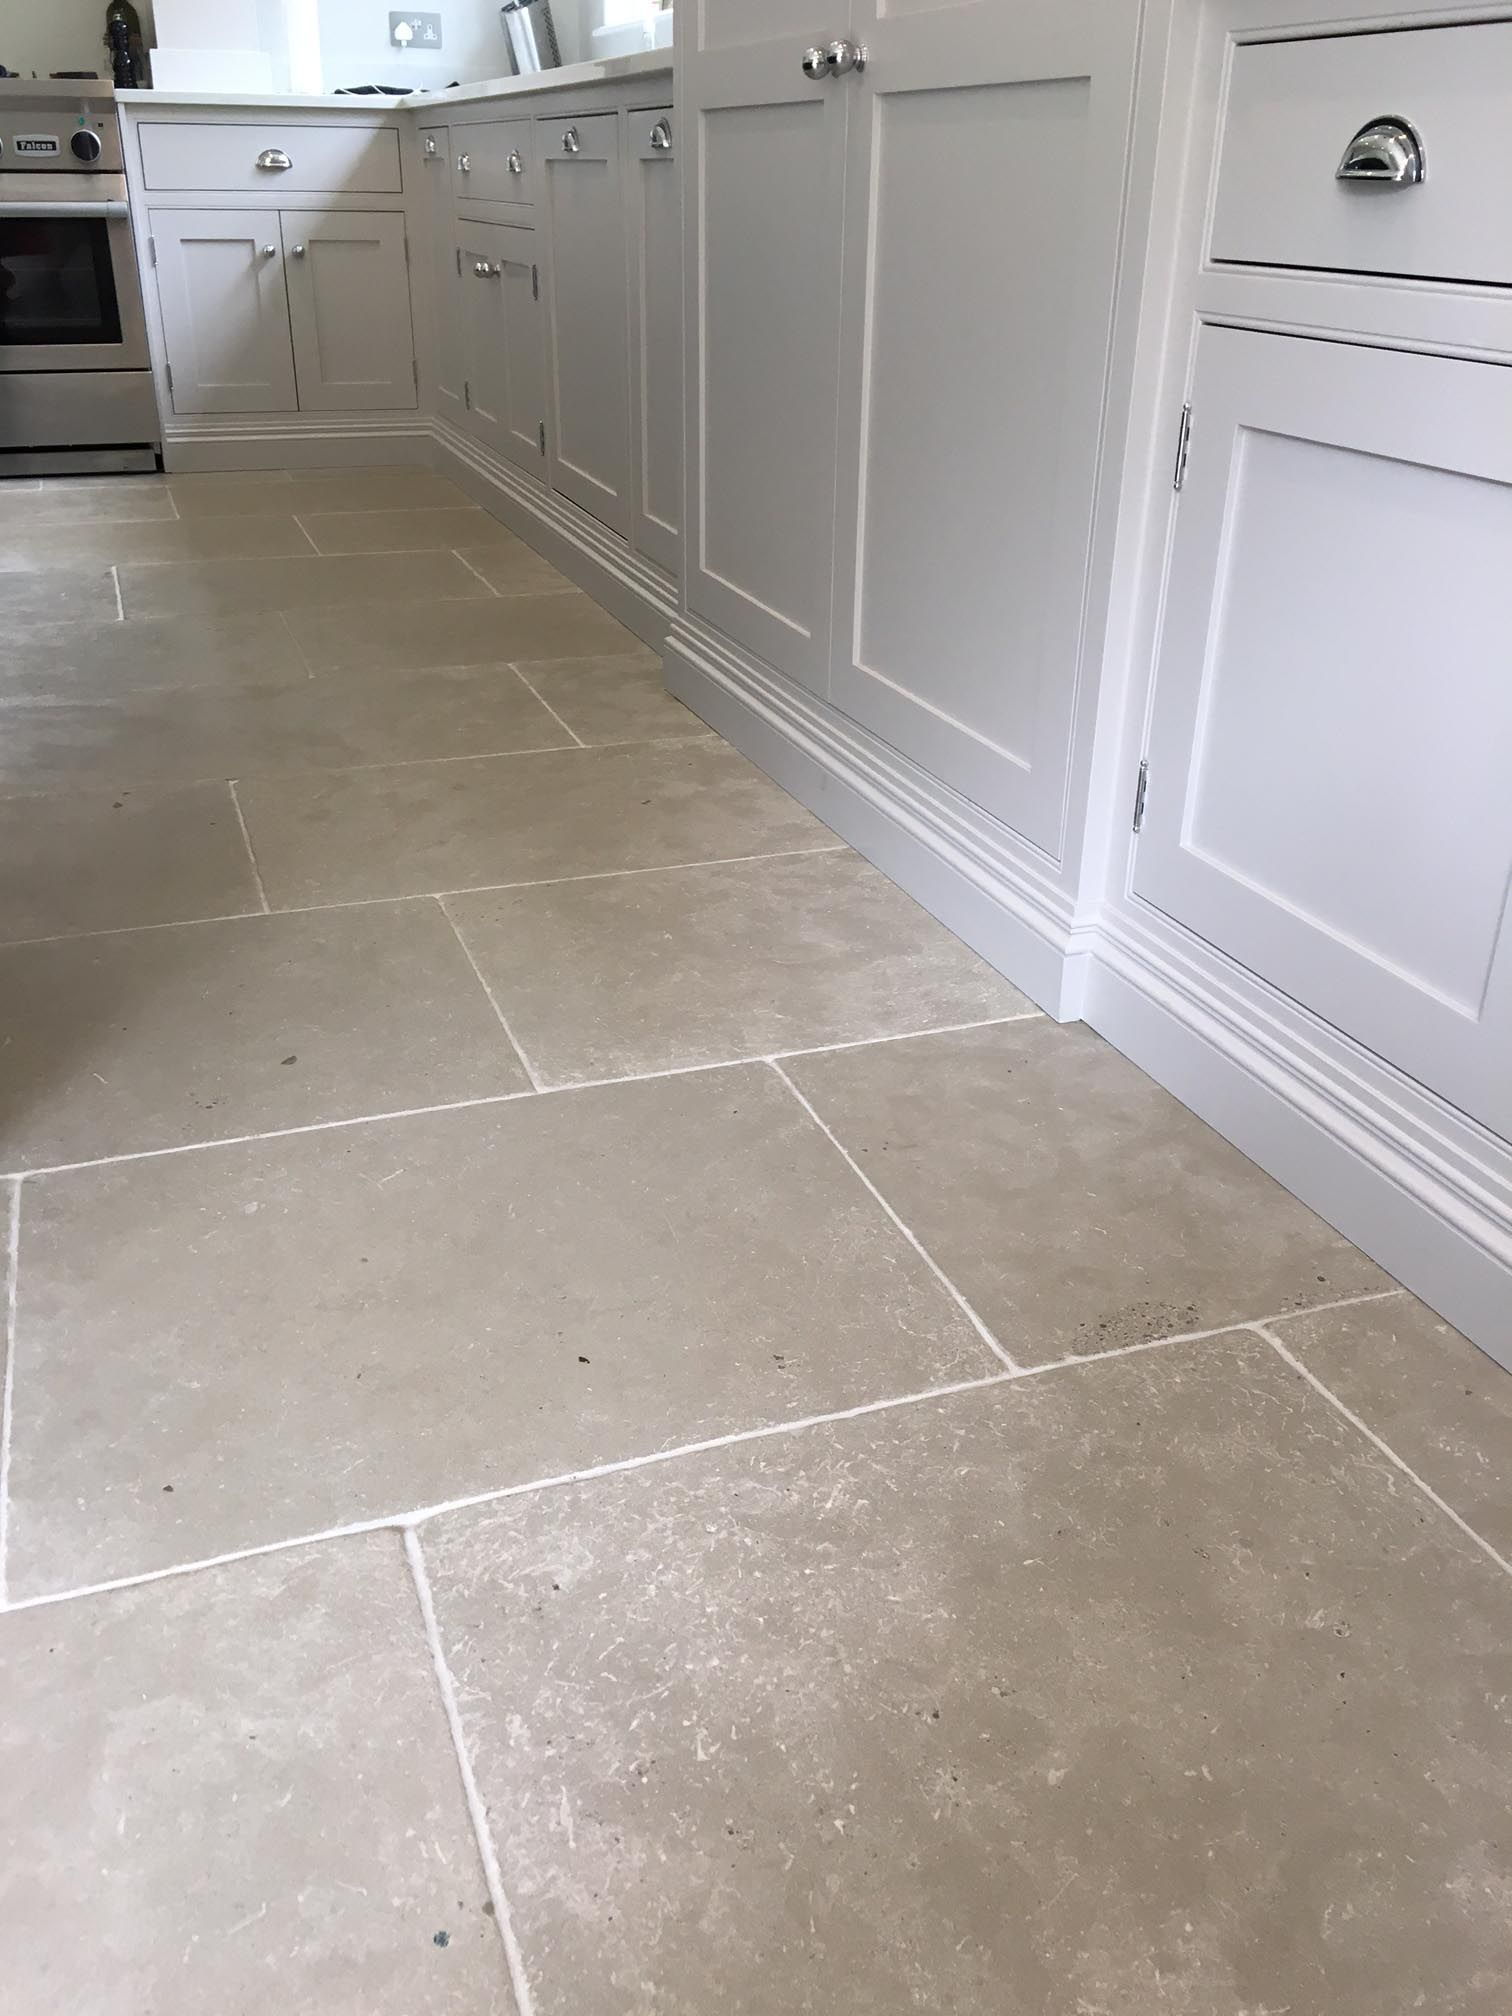 Paris grey limestone tiles | Paris grey, Kitchen floors and Surrey FC